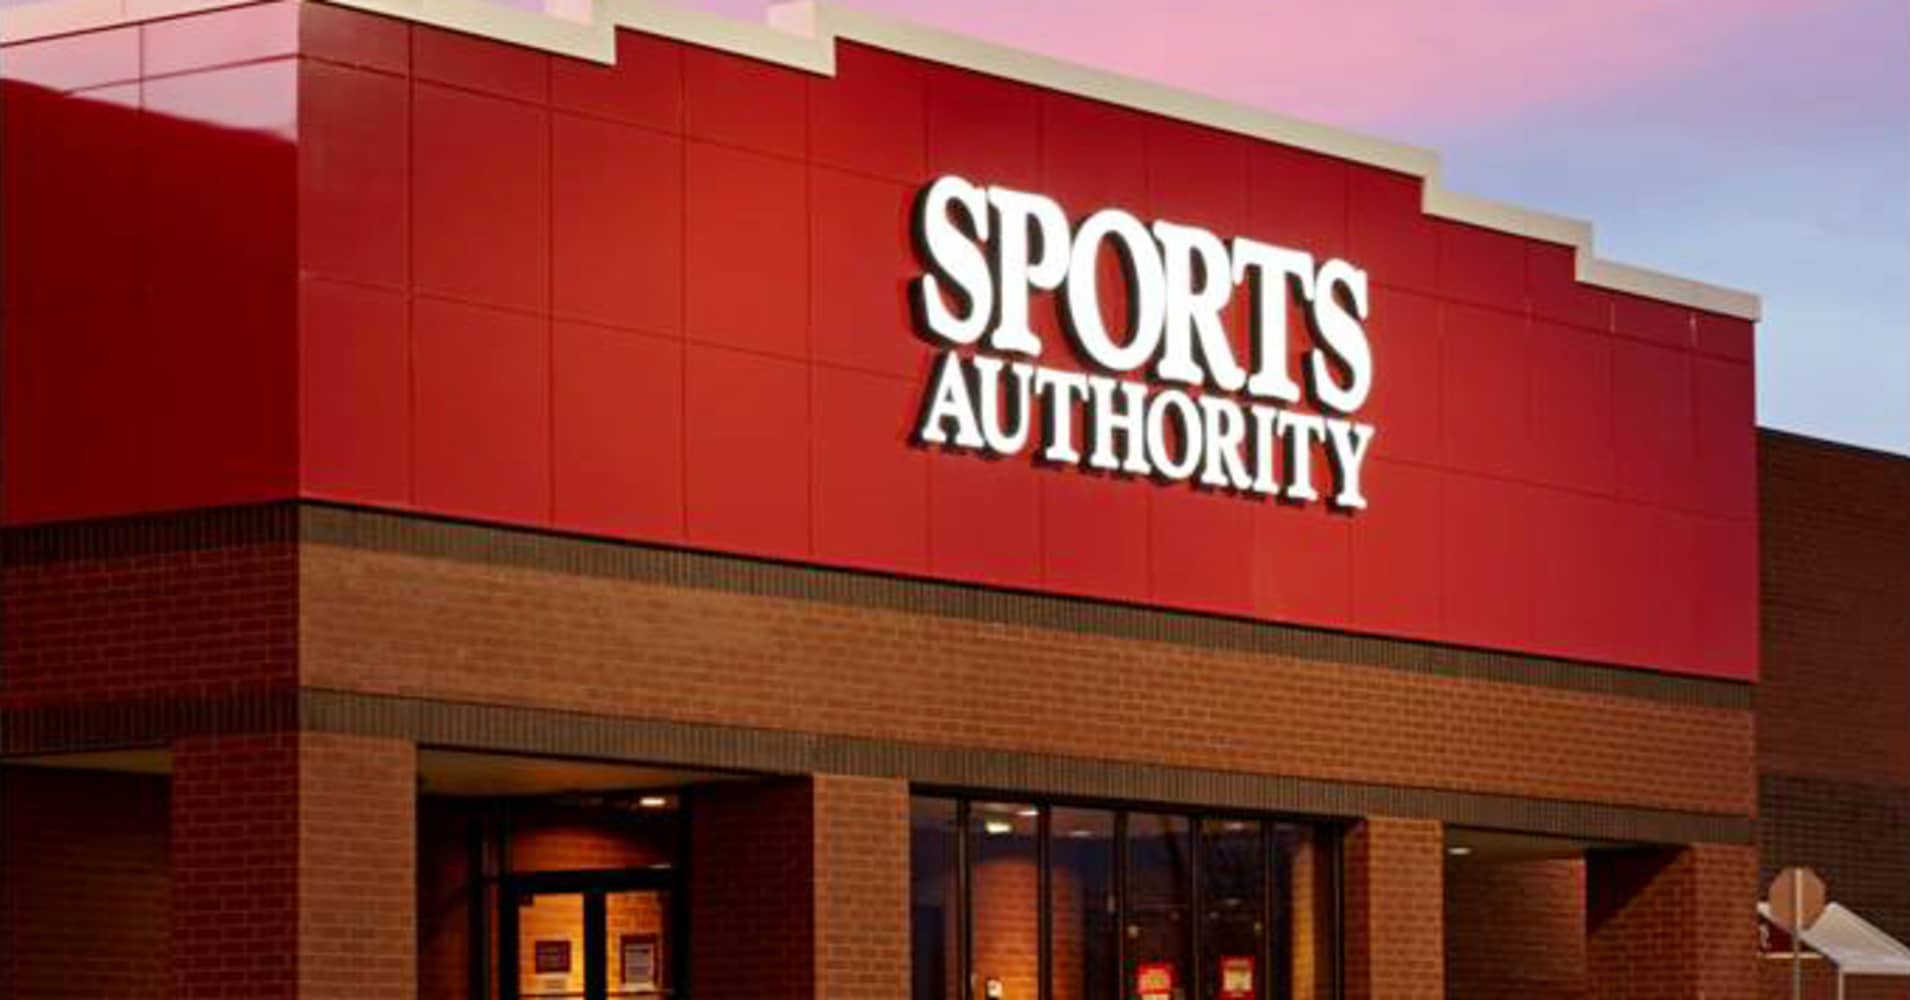 Sports Authority's play to take on Dick's